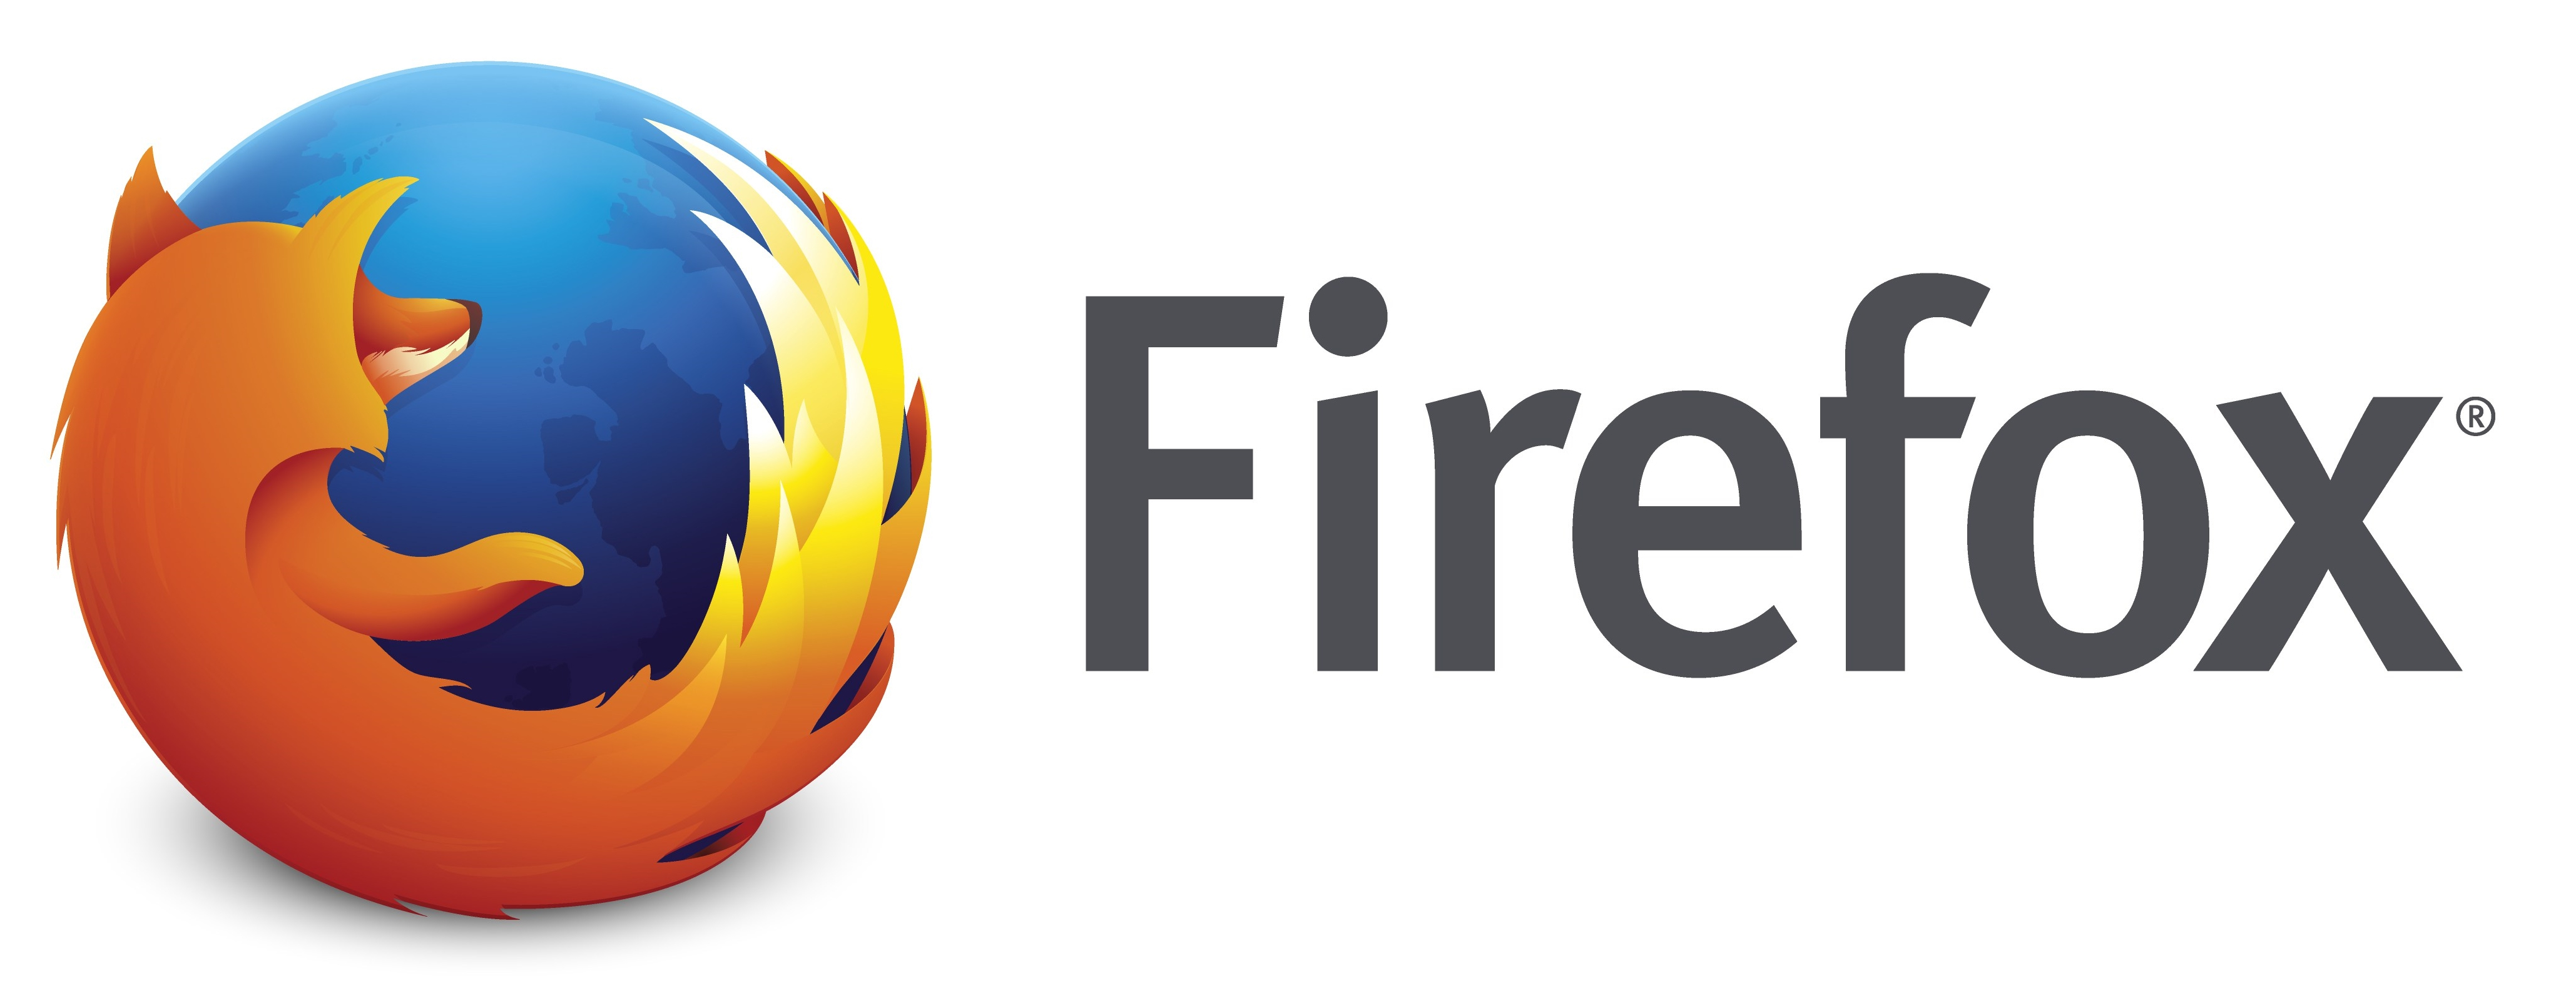 Firefox – Logos Download